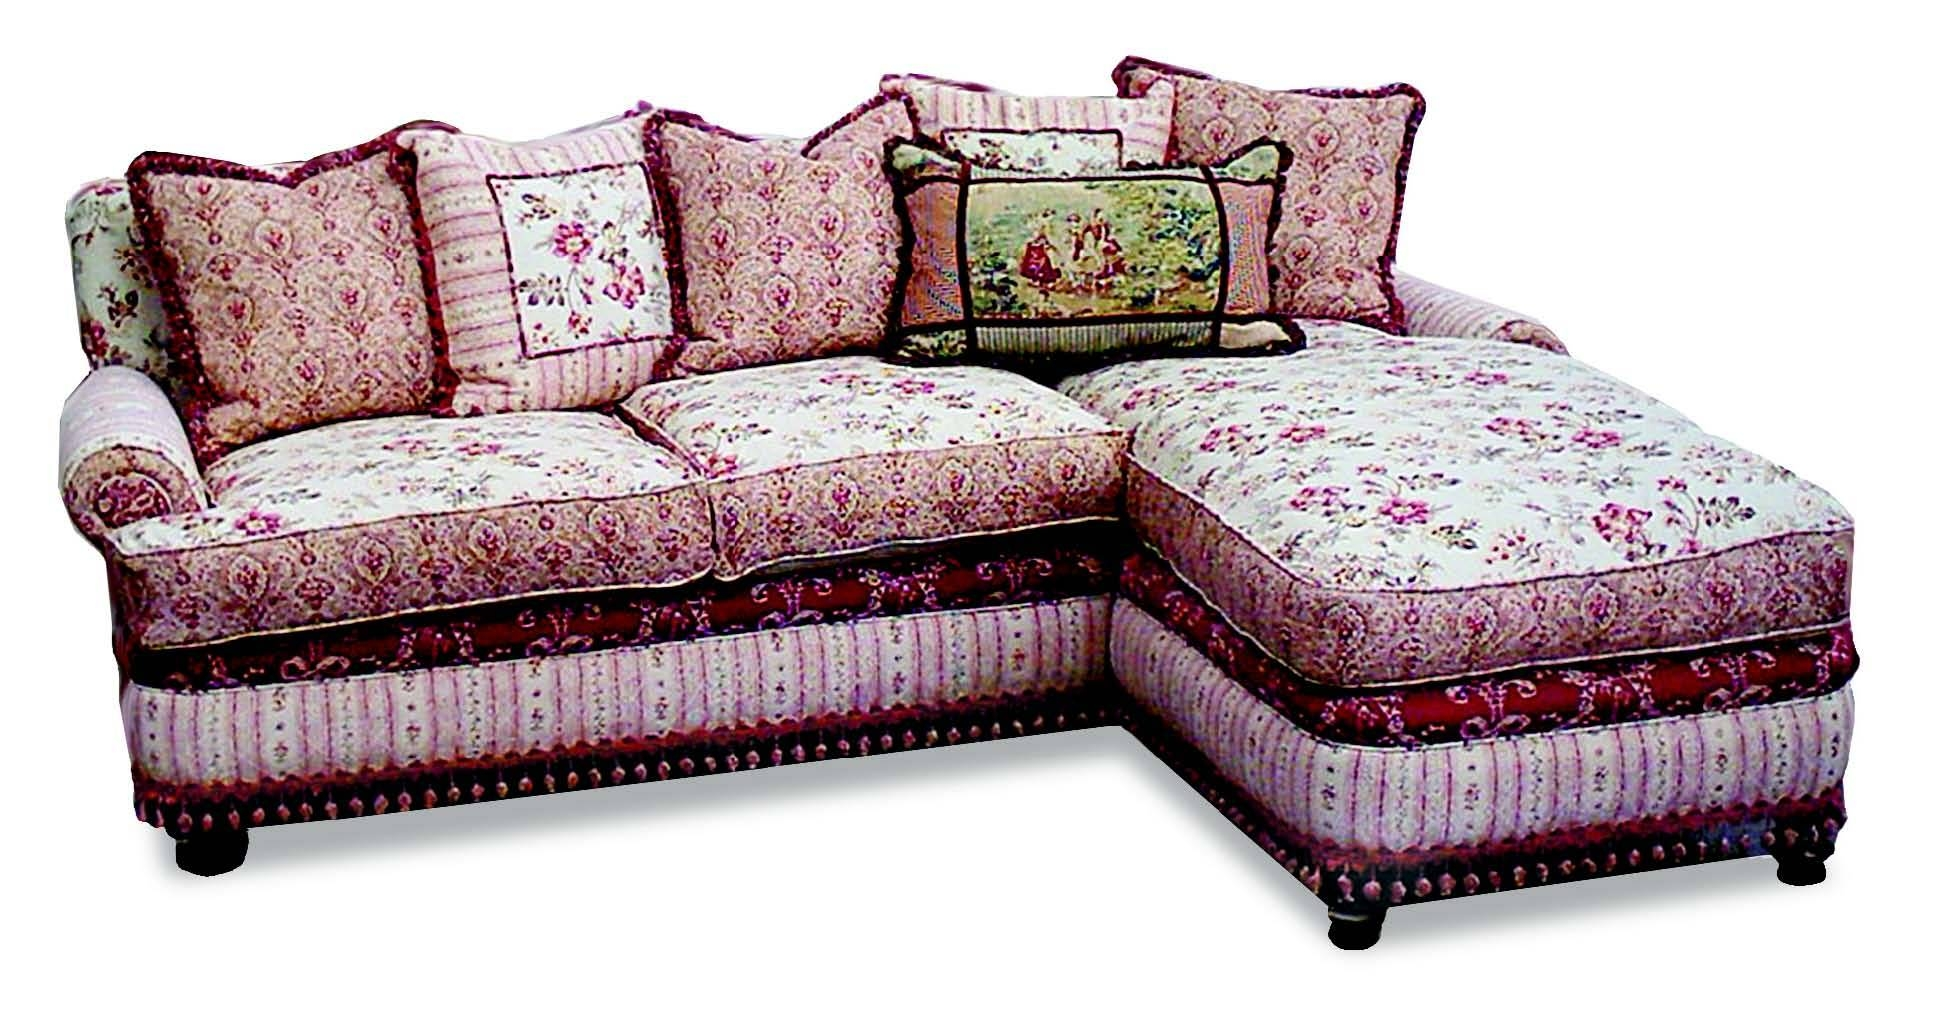 Furniture Home: Amusing Shabby Chic Sectional Sofa 16 For Your In Shabby Chic Sectional Couches (View 1 of 15)